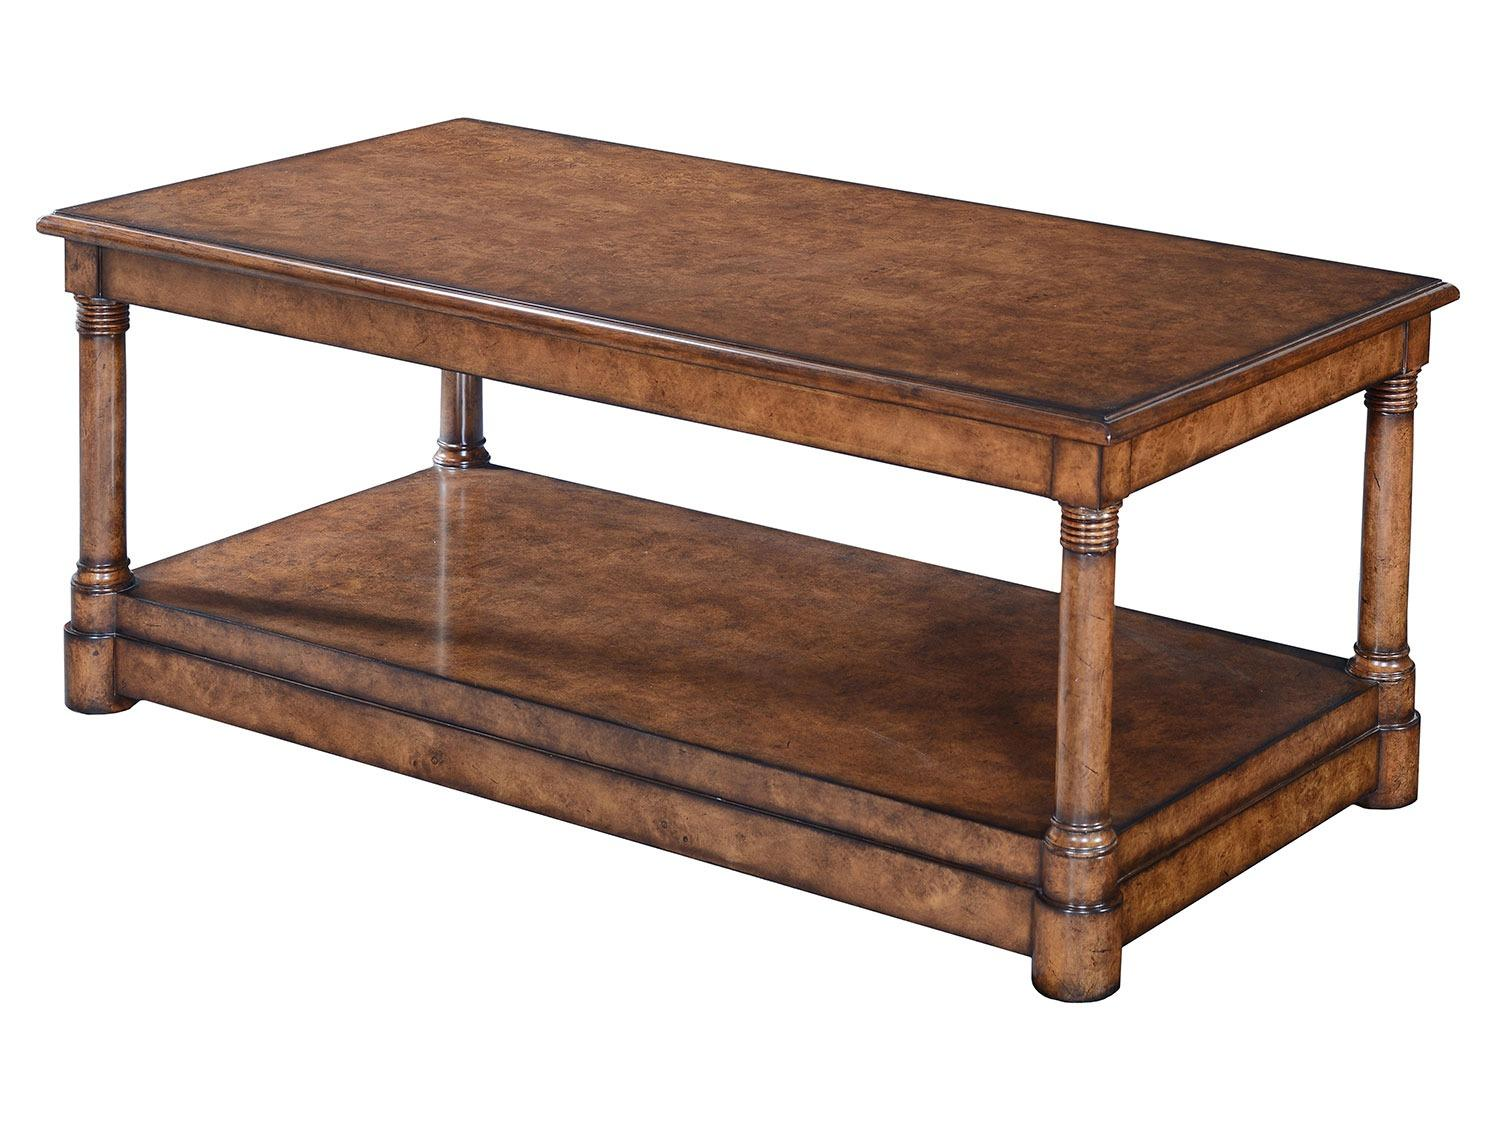 Empire style coffee table - Burr oak